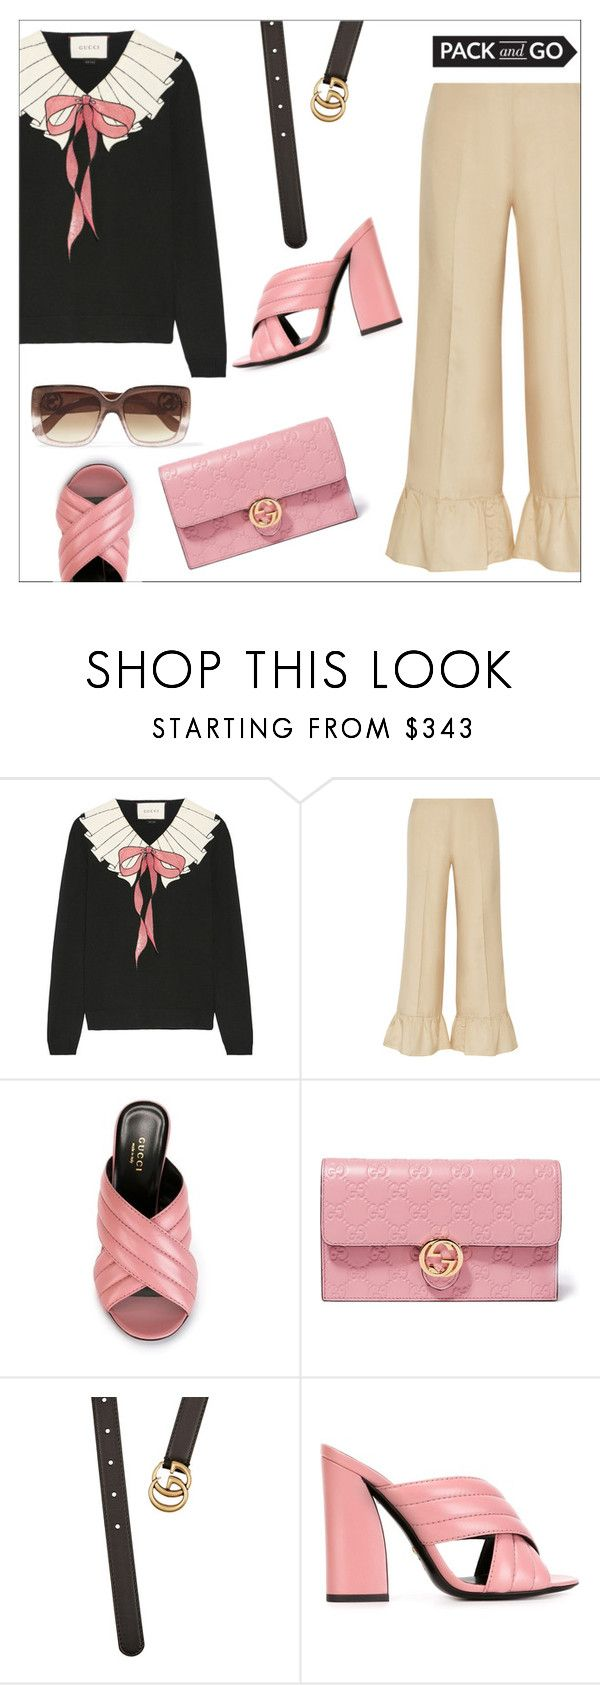 """""""Pack and Go: Mexico City"""" by danielle-487 ❤ liked on Polyvore featuring Gucci and Packandgo"""